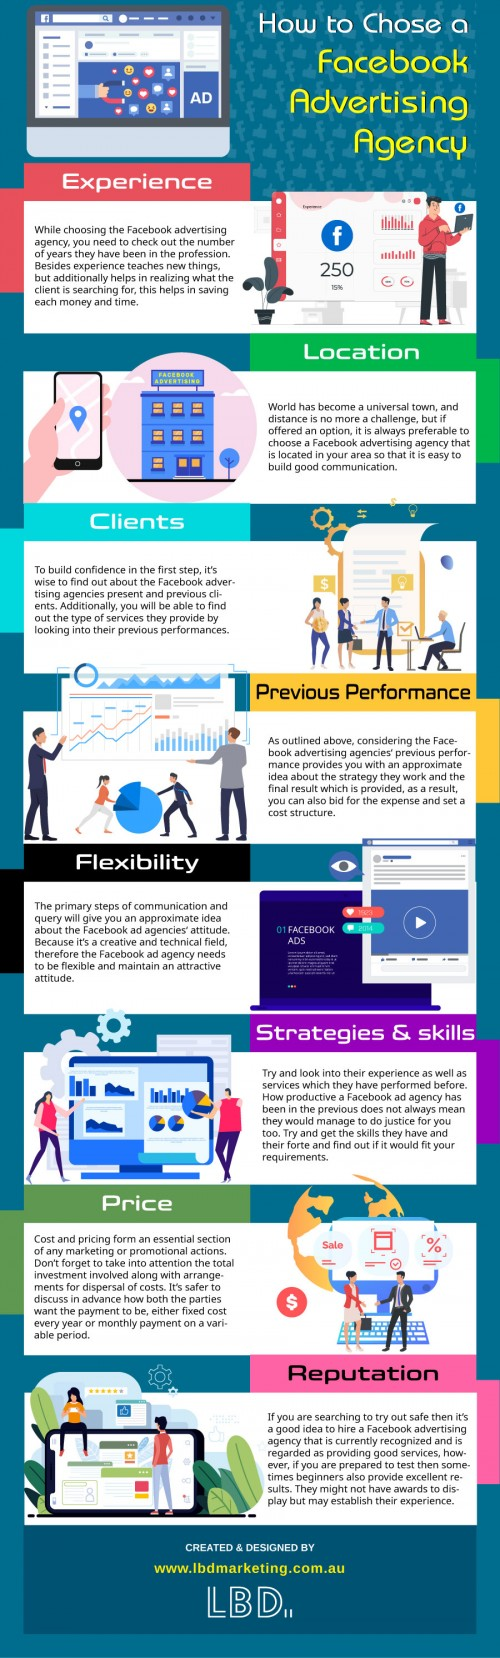 How-to-Chose-a-Facebook-Advertising-Agency5f967bbac4f1f1f1.jpg